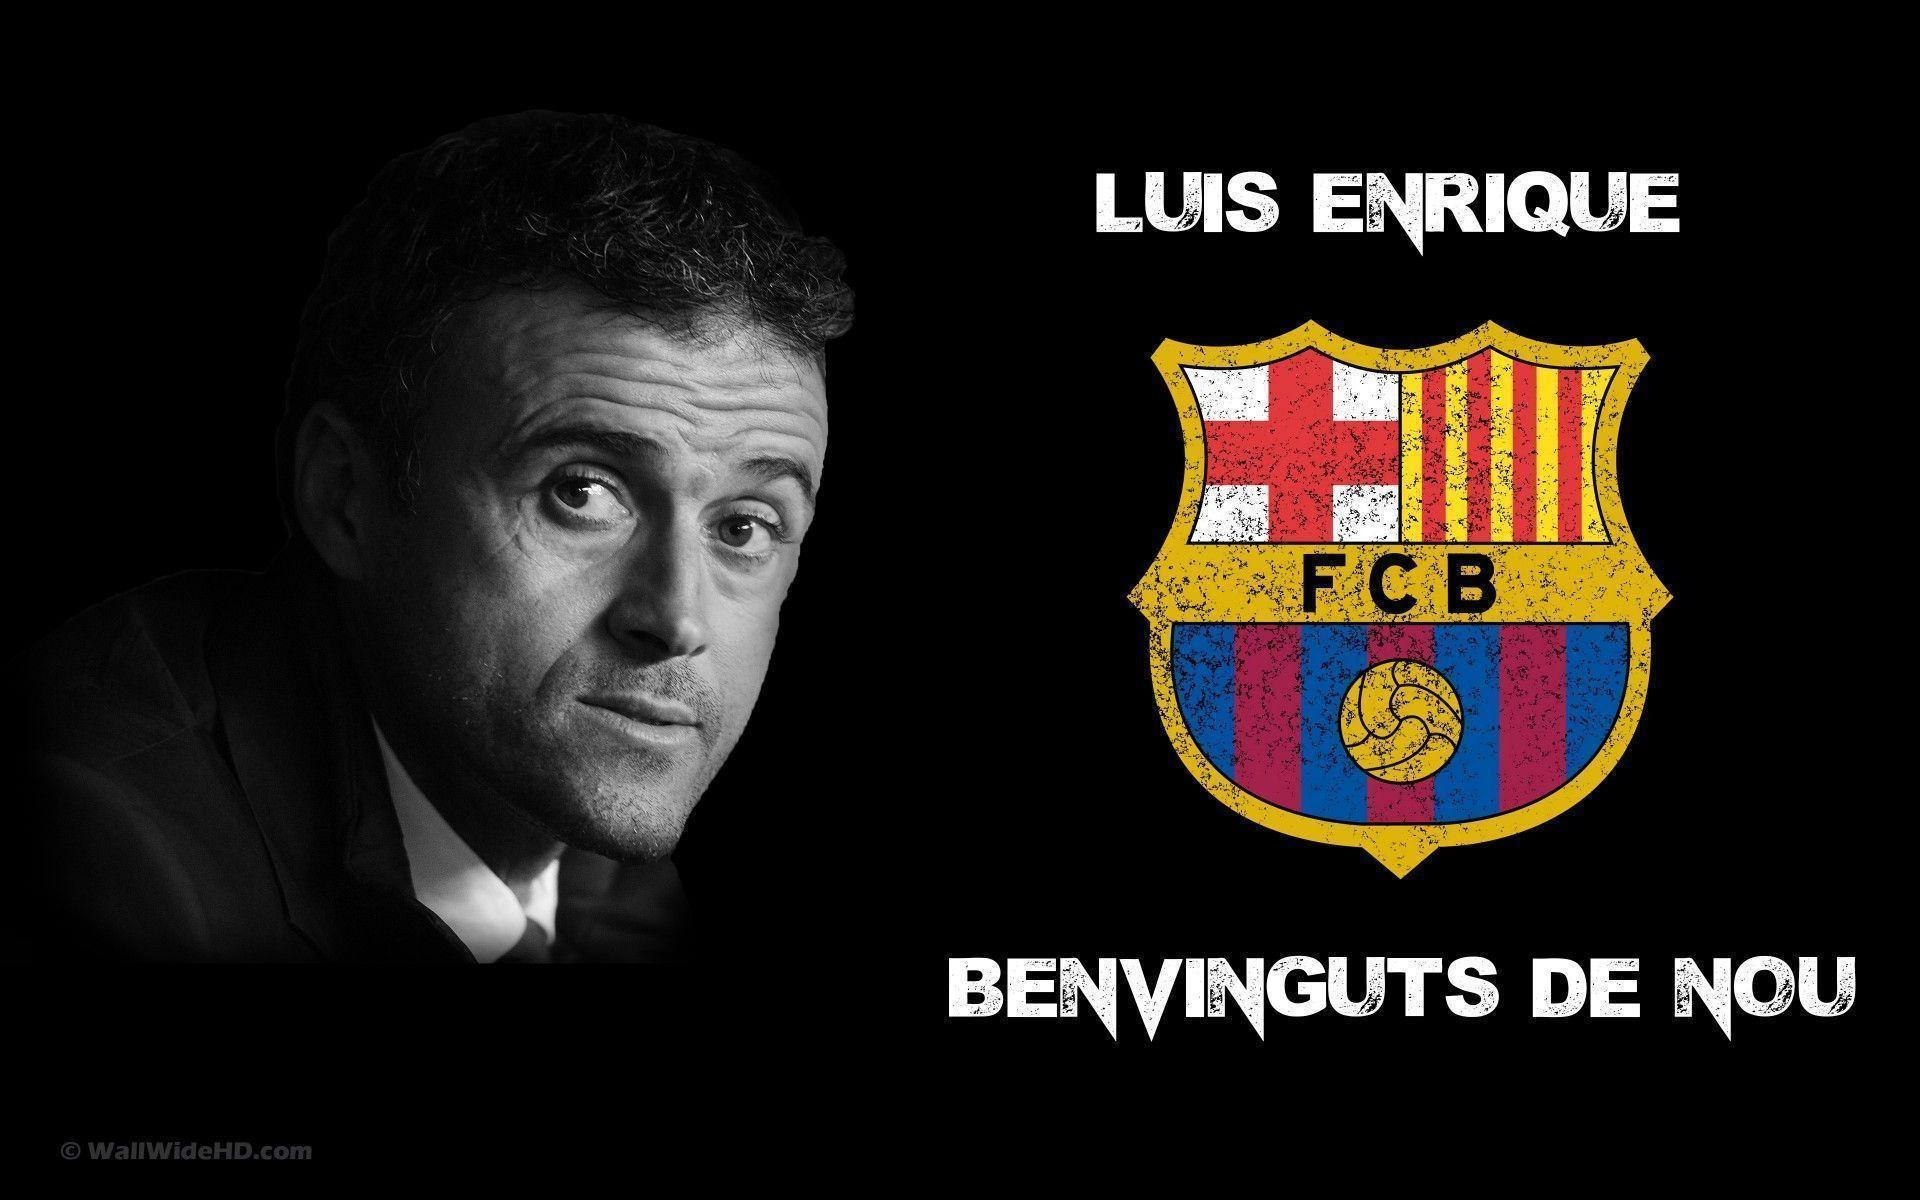 Luis Enrique 2014 FC Barcelona Manager Wallpaper Wide or HD | Male ...